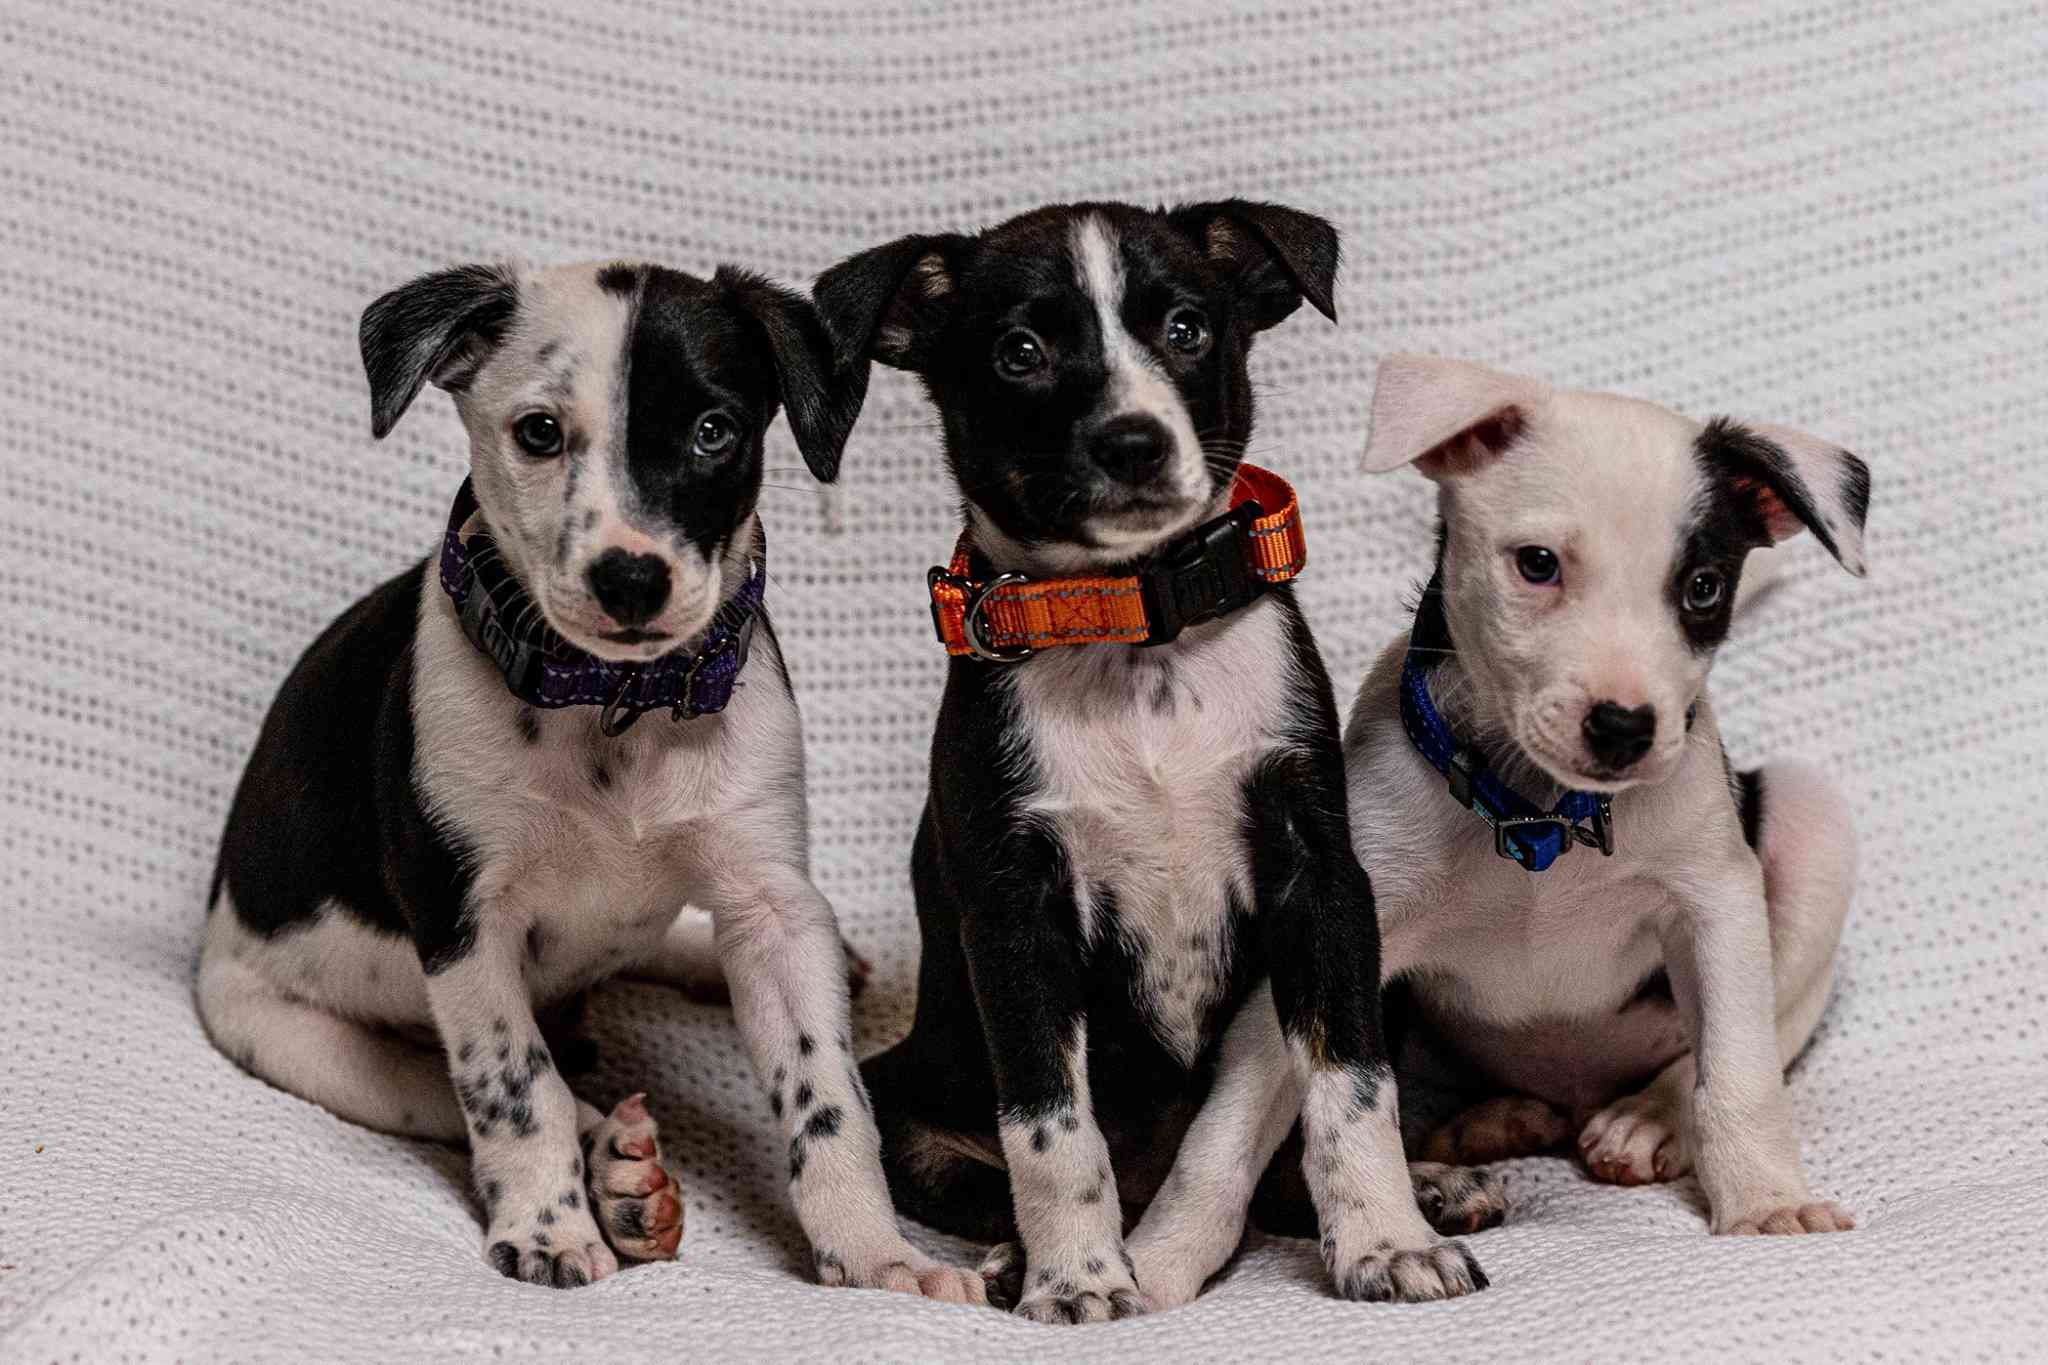 puppies wearing new collars